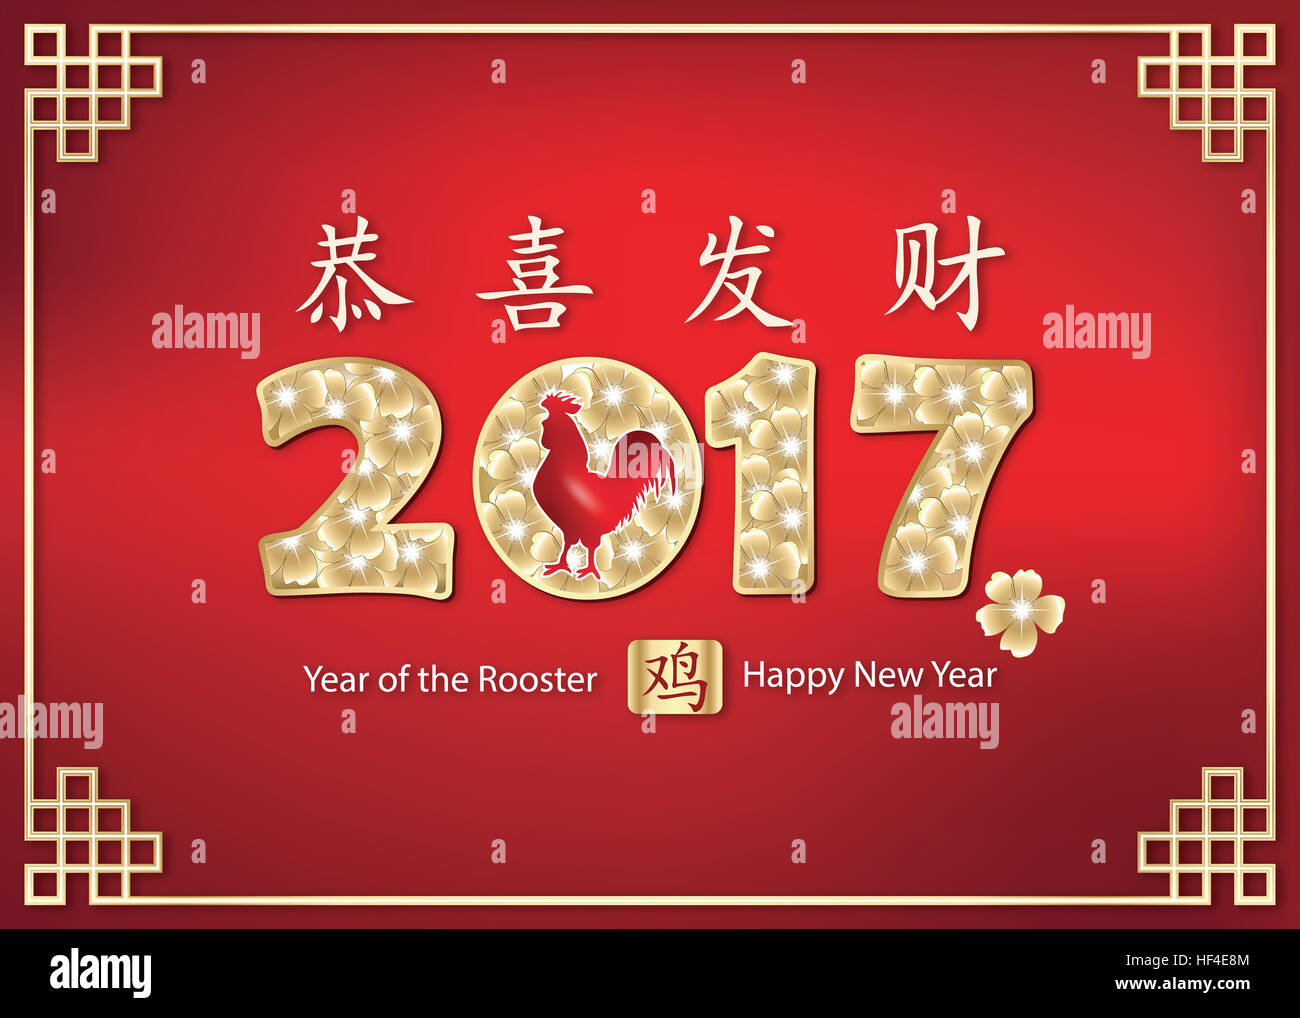 chinese new year of the rooster 2017 printable corporate greeting card chinese characters year of the rooster